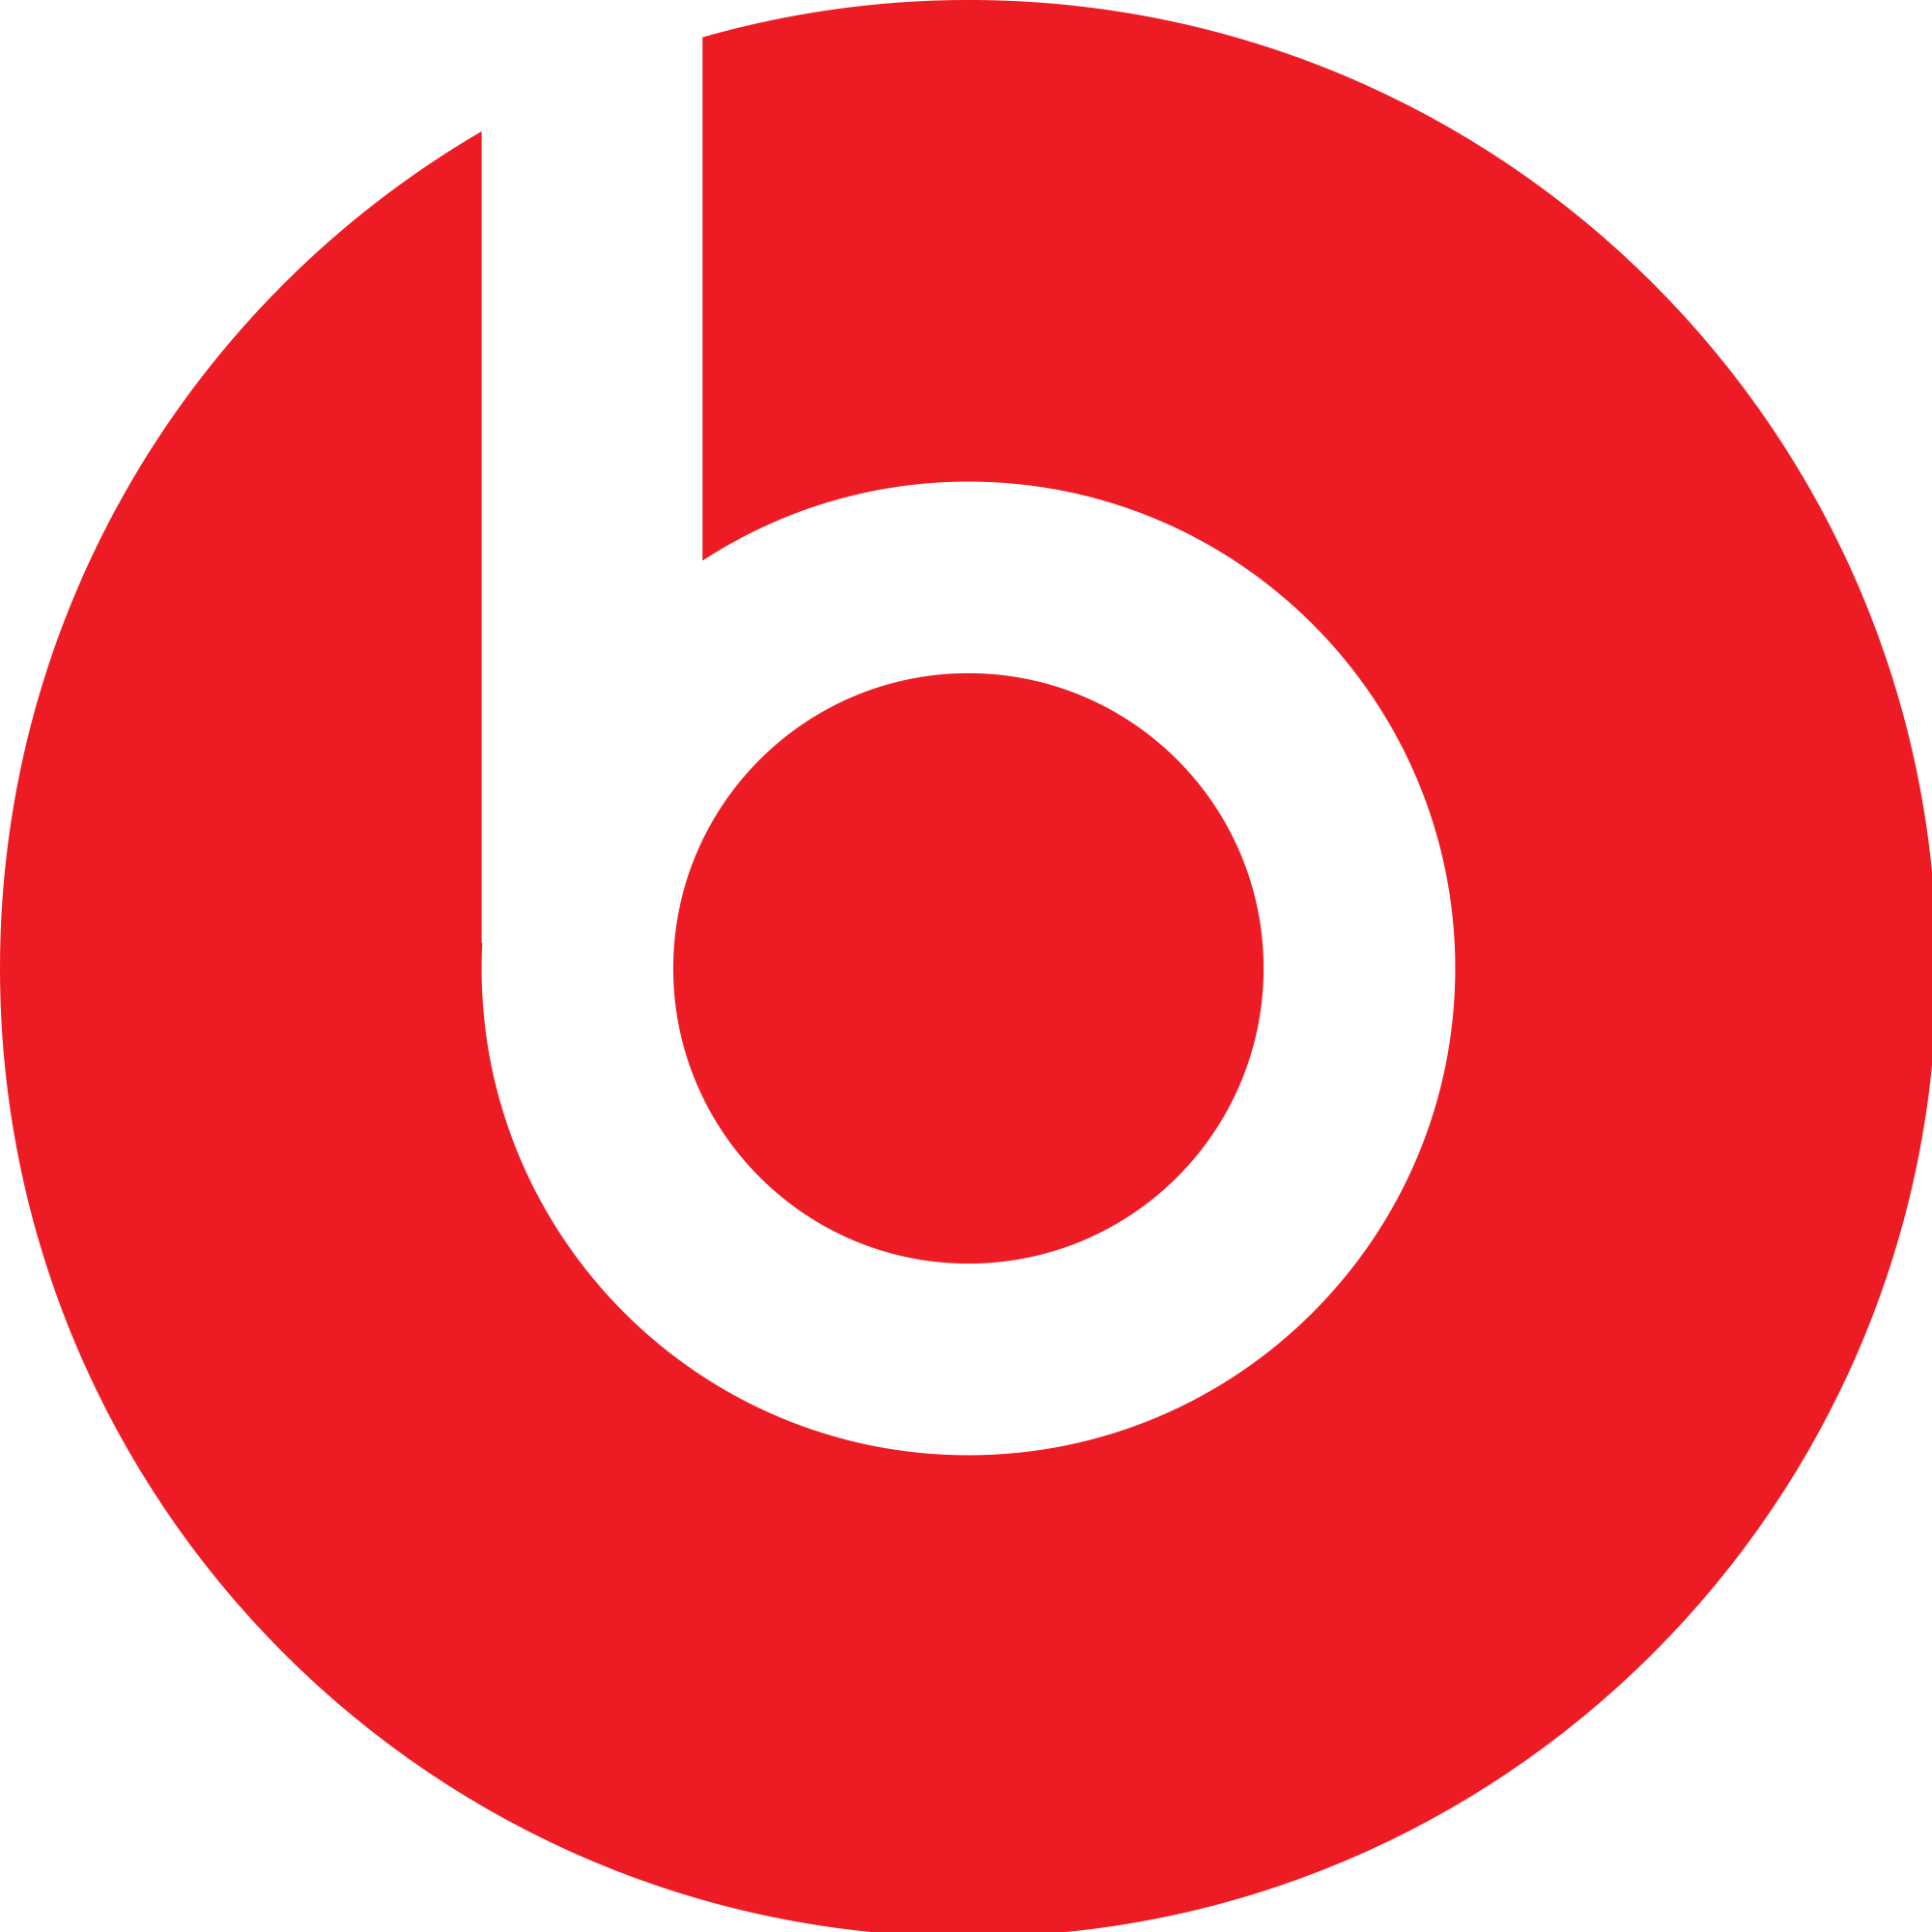 (Dr Dre Beats Logo) The positive space looks like a